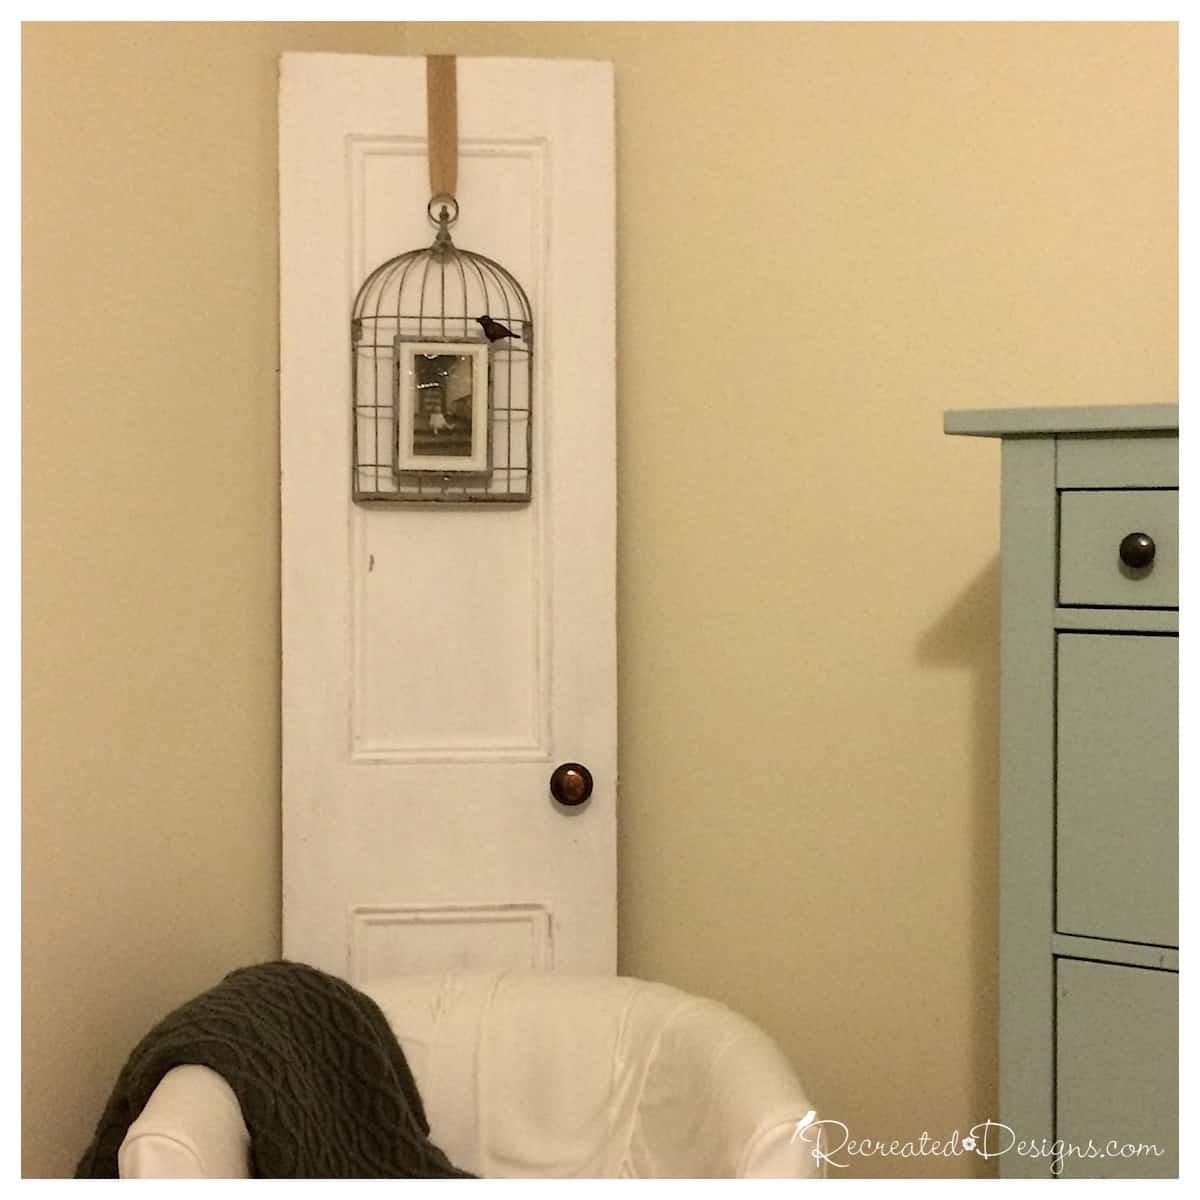 ... salvaged_door_with_antique_photo & A Salvaged Door Speaks of Family History - Recreated Designs pezcame.com